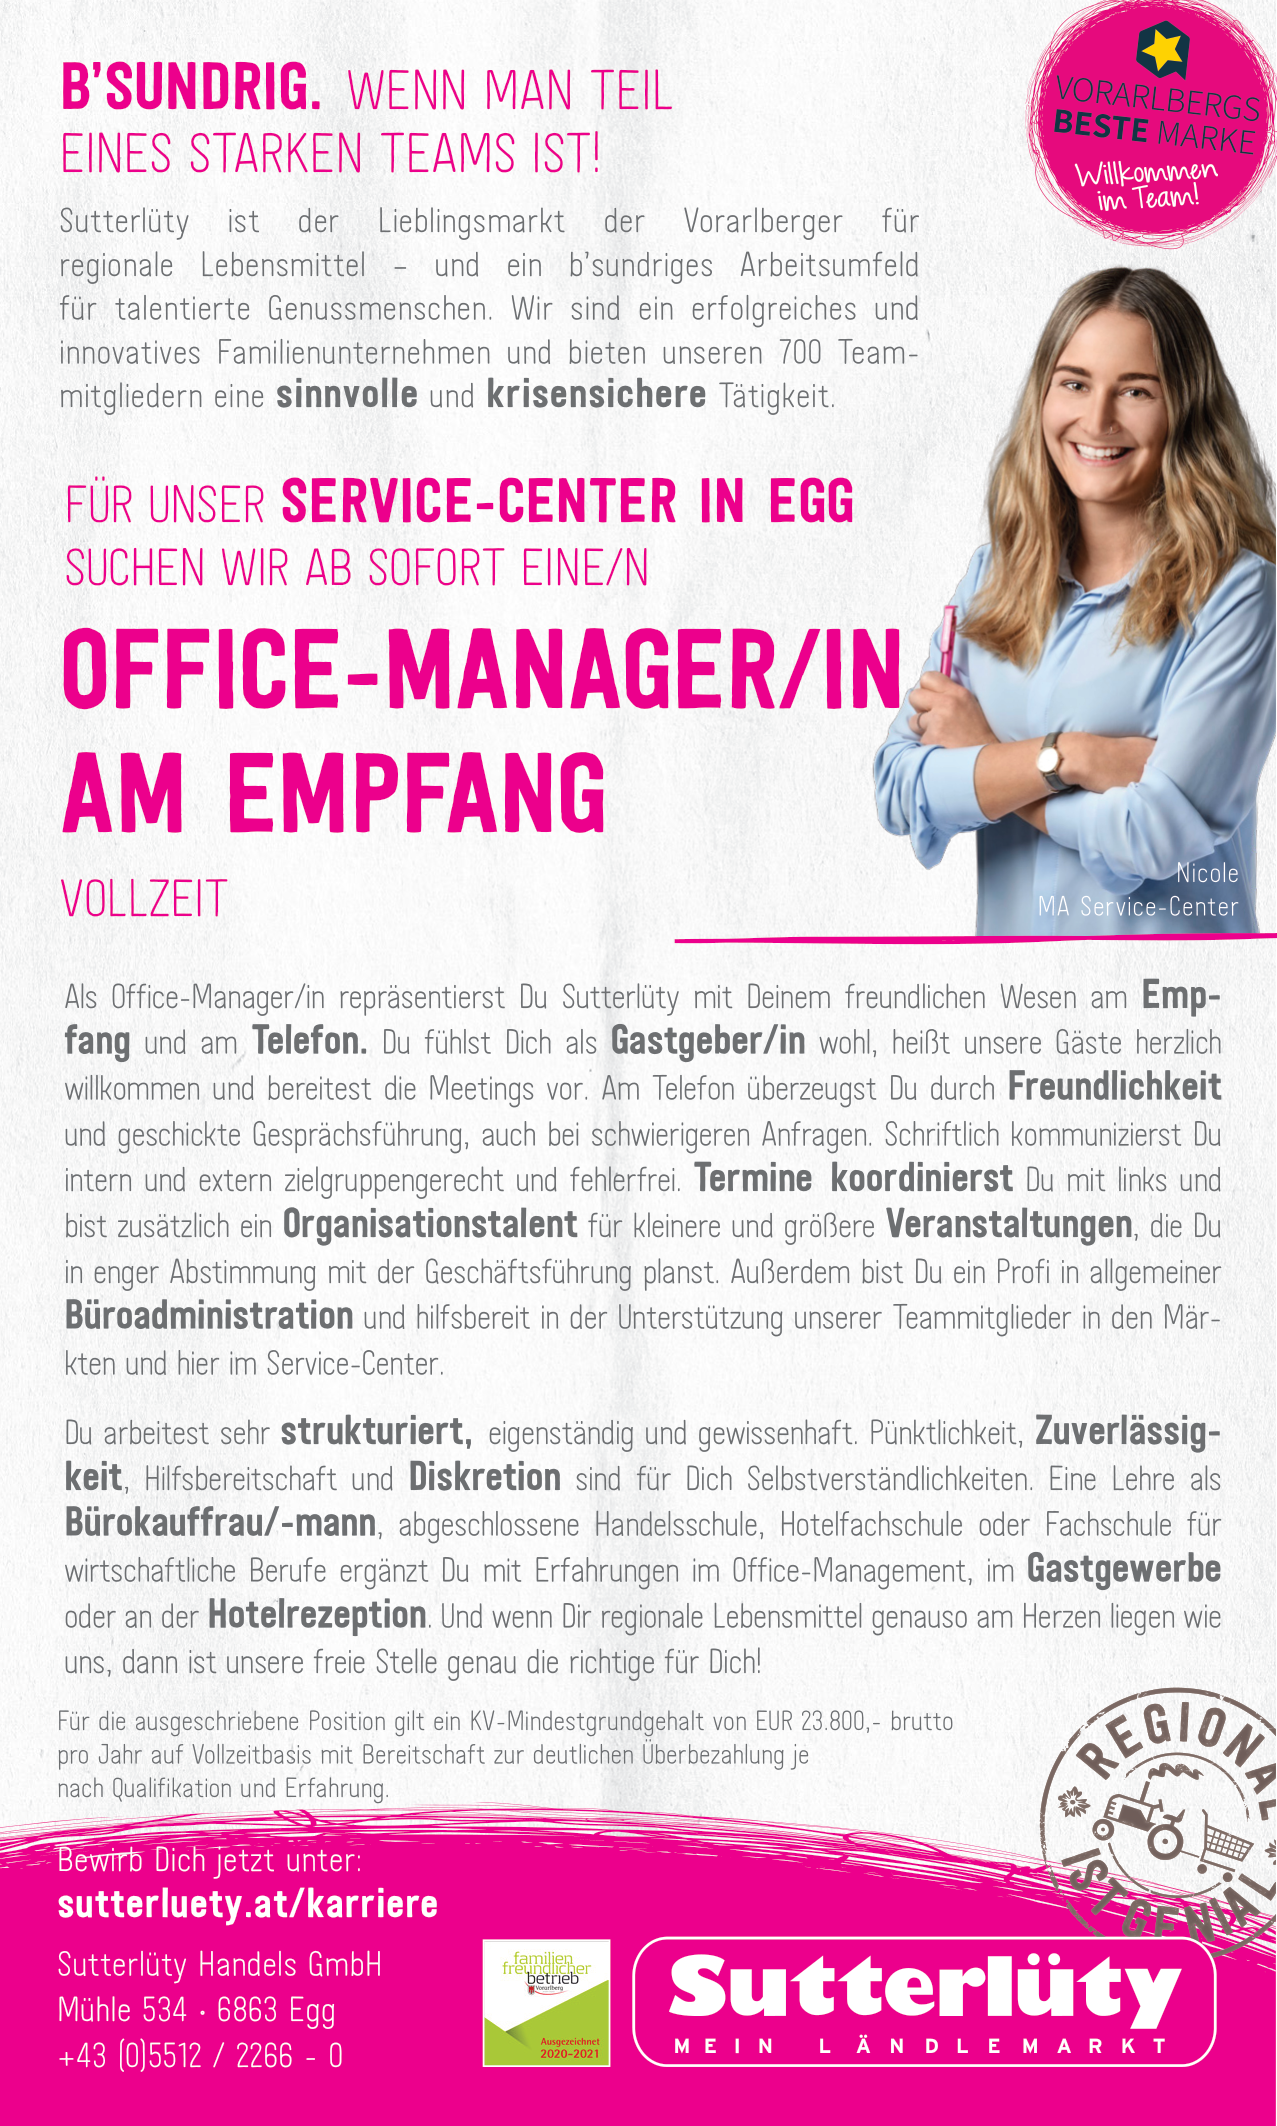 Office-Manager/in am Empfang